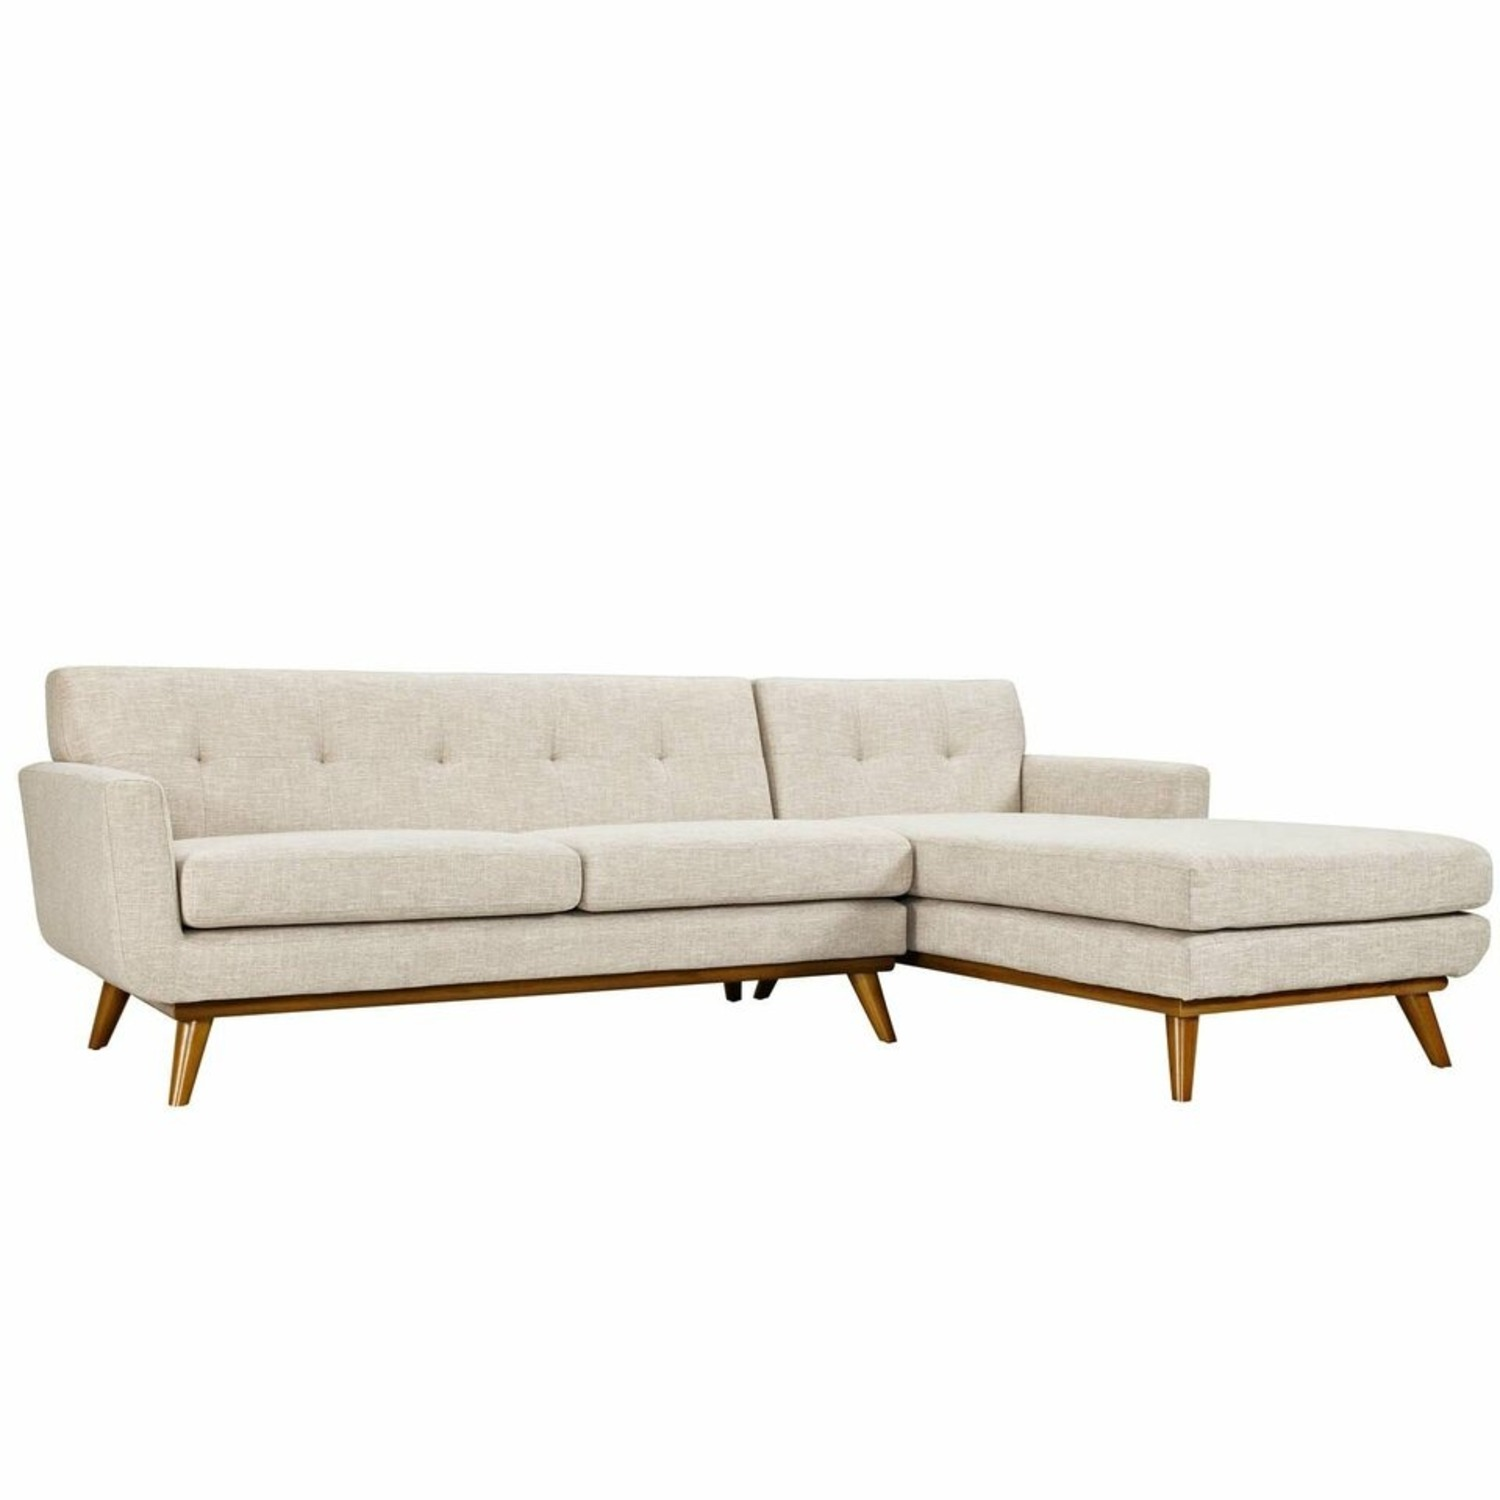 Right-Facing Sectional In Beige Upholstered Fabric - image-0